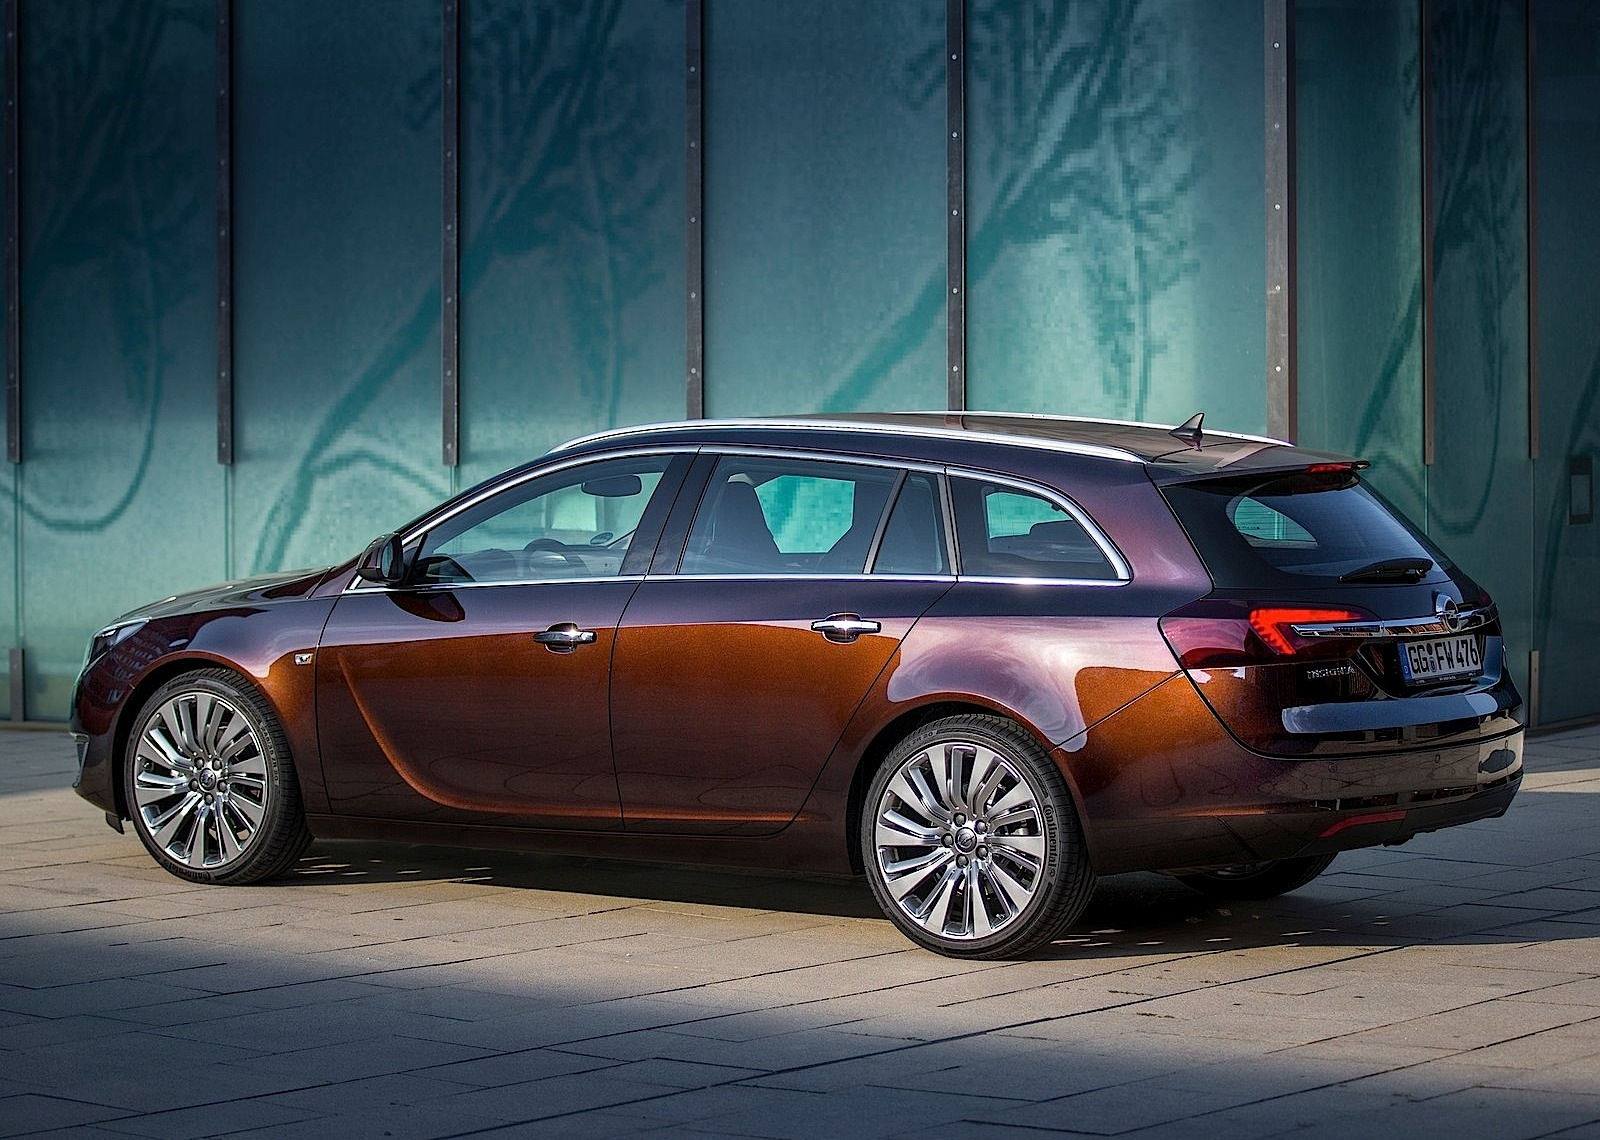 opel insignia sports tourer specs photos 2013 2014 2015 2016 2017 autoevolution. Black Bedroom Furniture Sets. Home Design Ideas